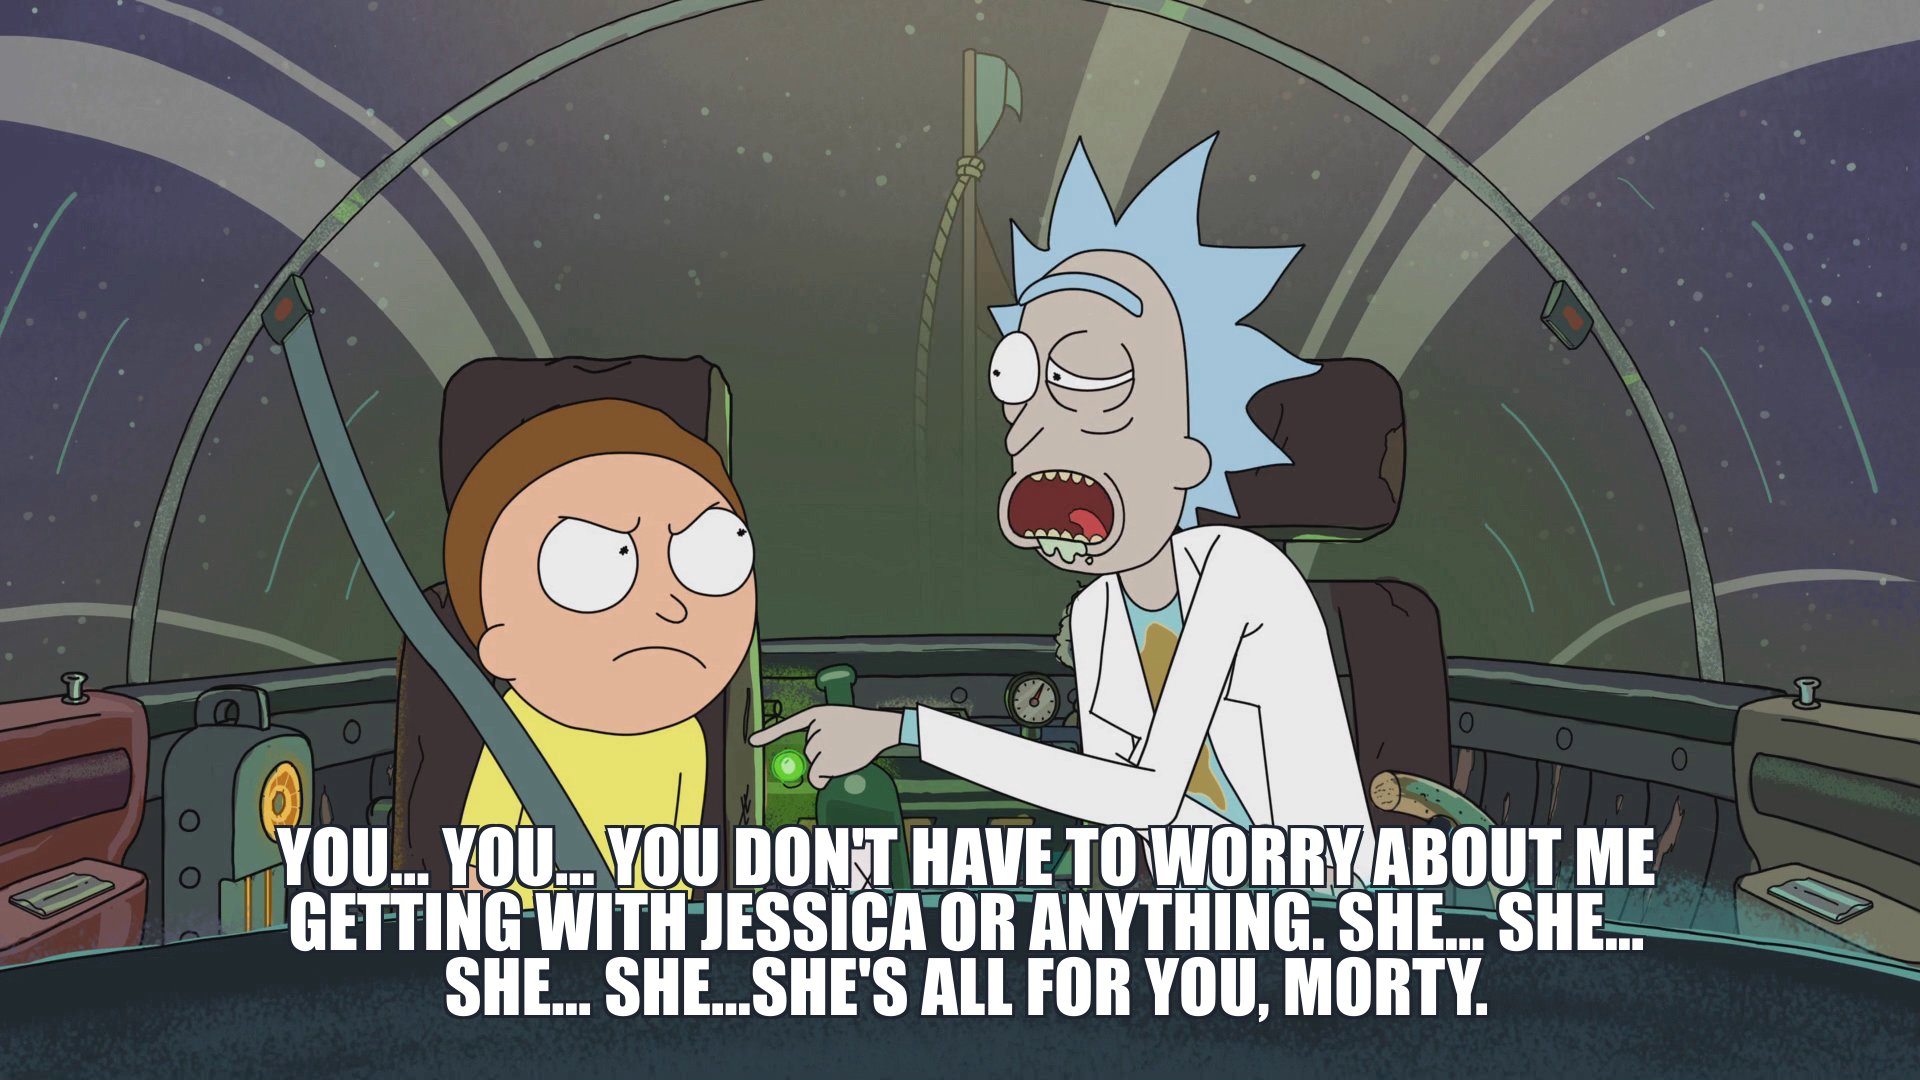 4 rick and morty meme generator master of all science' is the 'rick and morty' meme generator fans